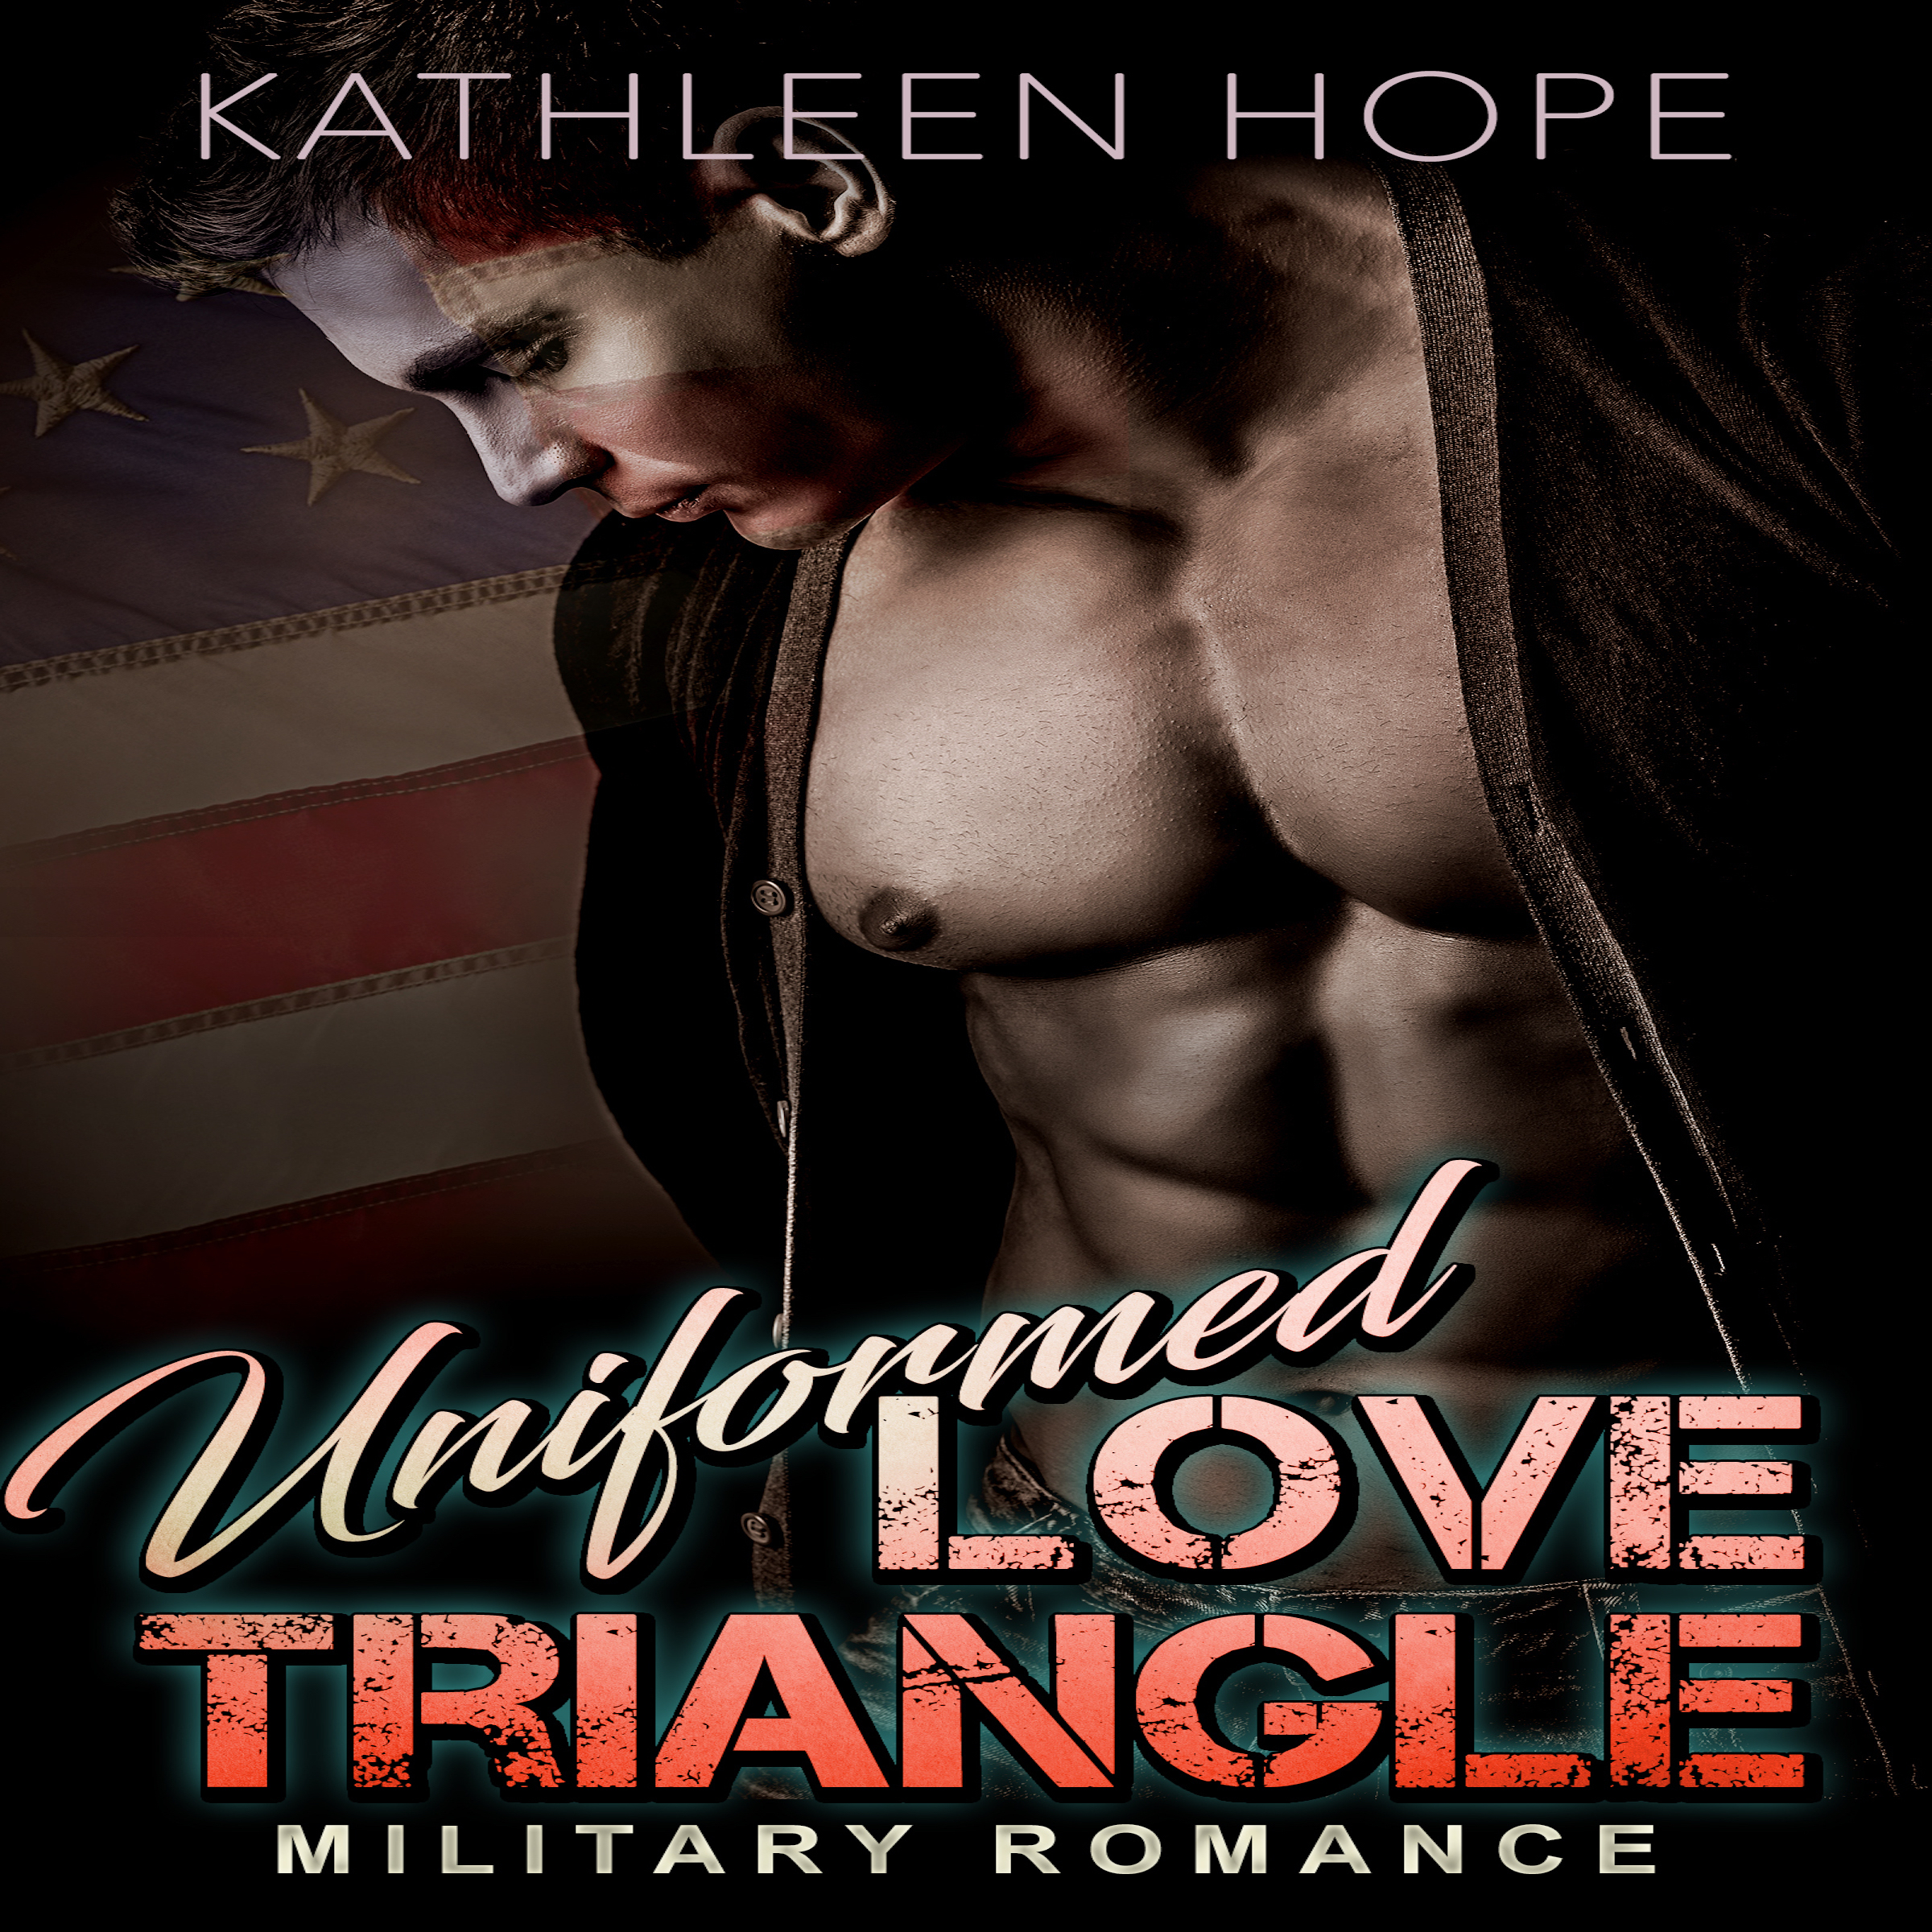 Printable Military Romance: Uniformed Love Triangle Audiobook Cover Art